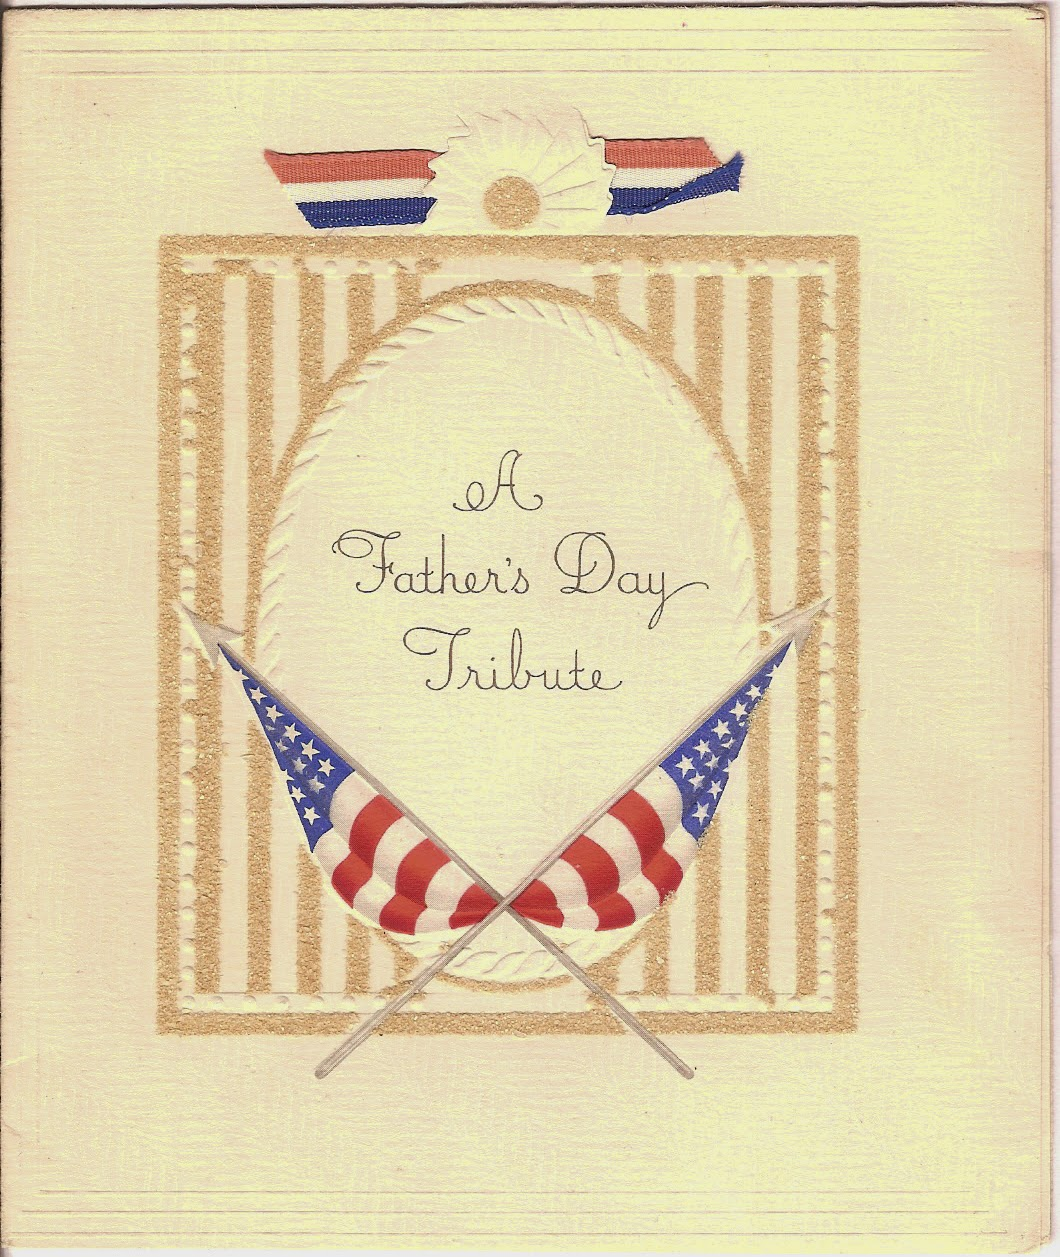 A Fathers Day Tribute card from seventy years ago